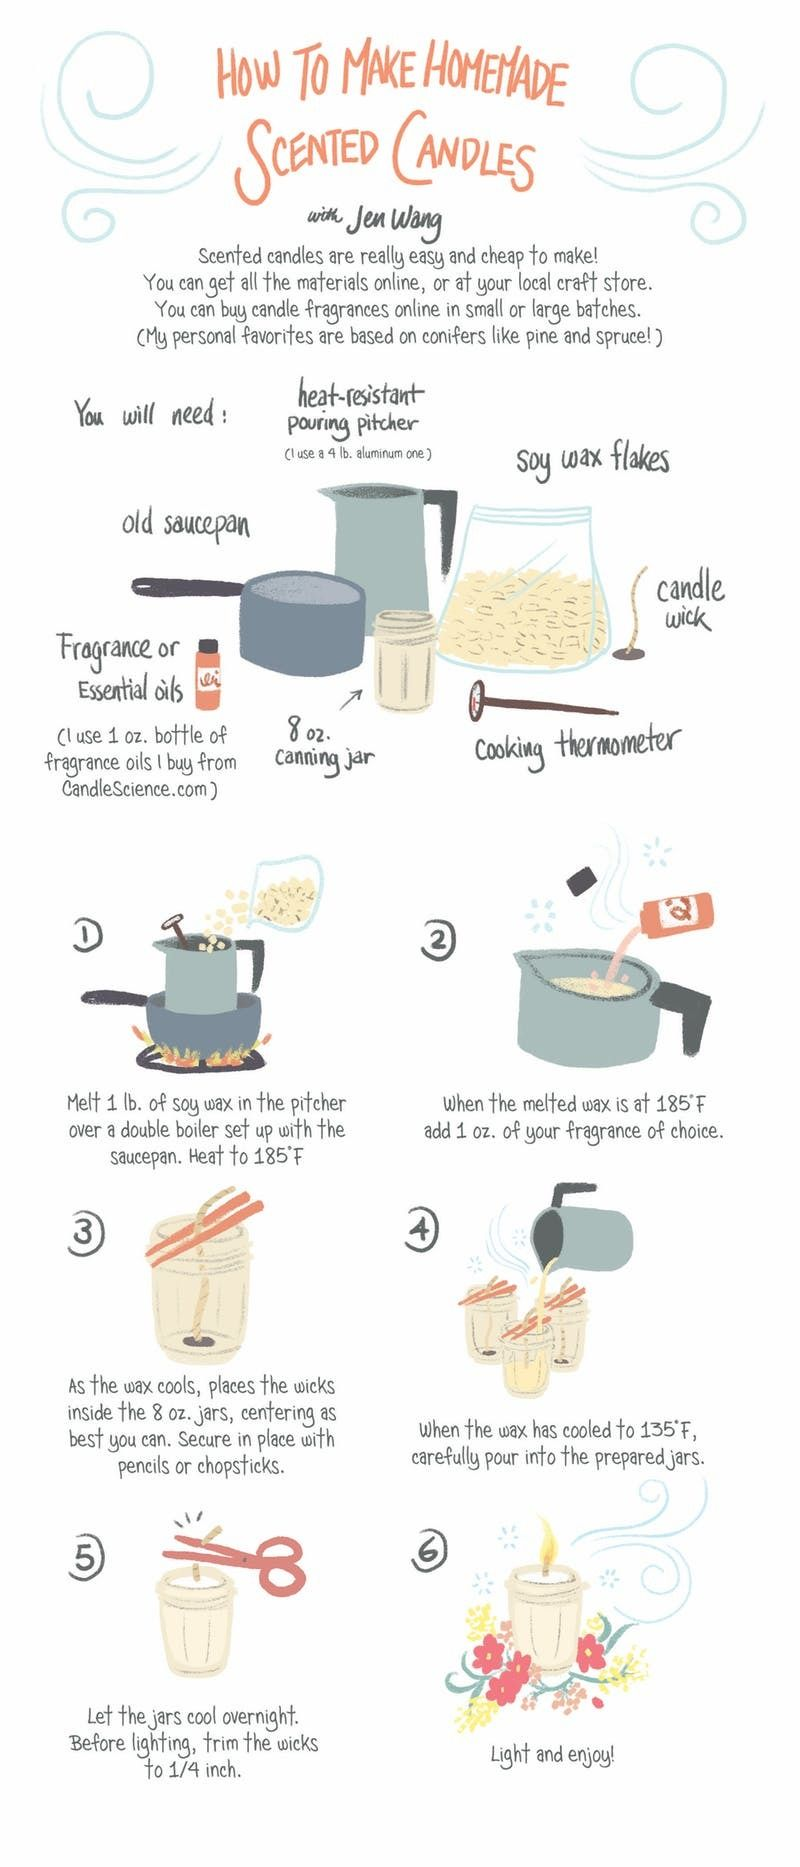 How To Make Homemade Scented Candles Homemade scented